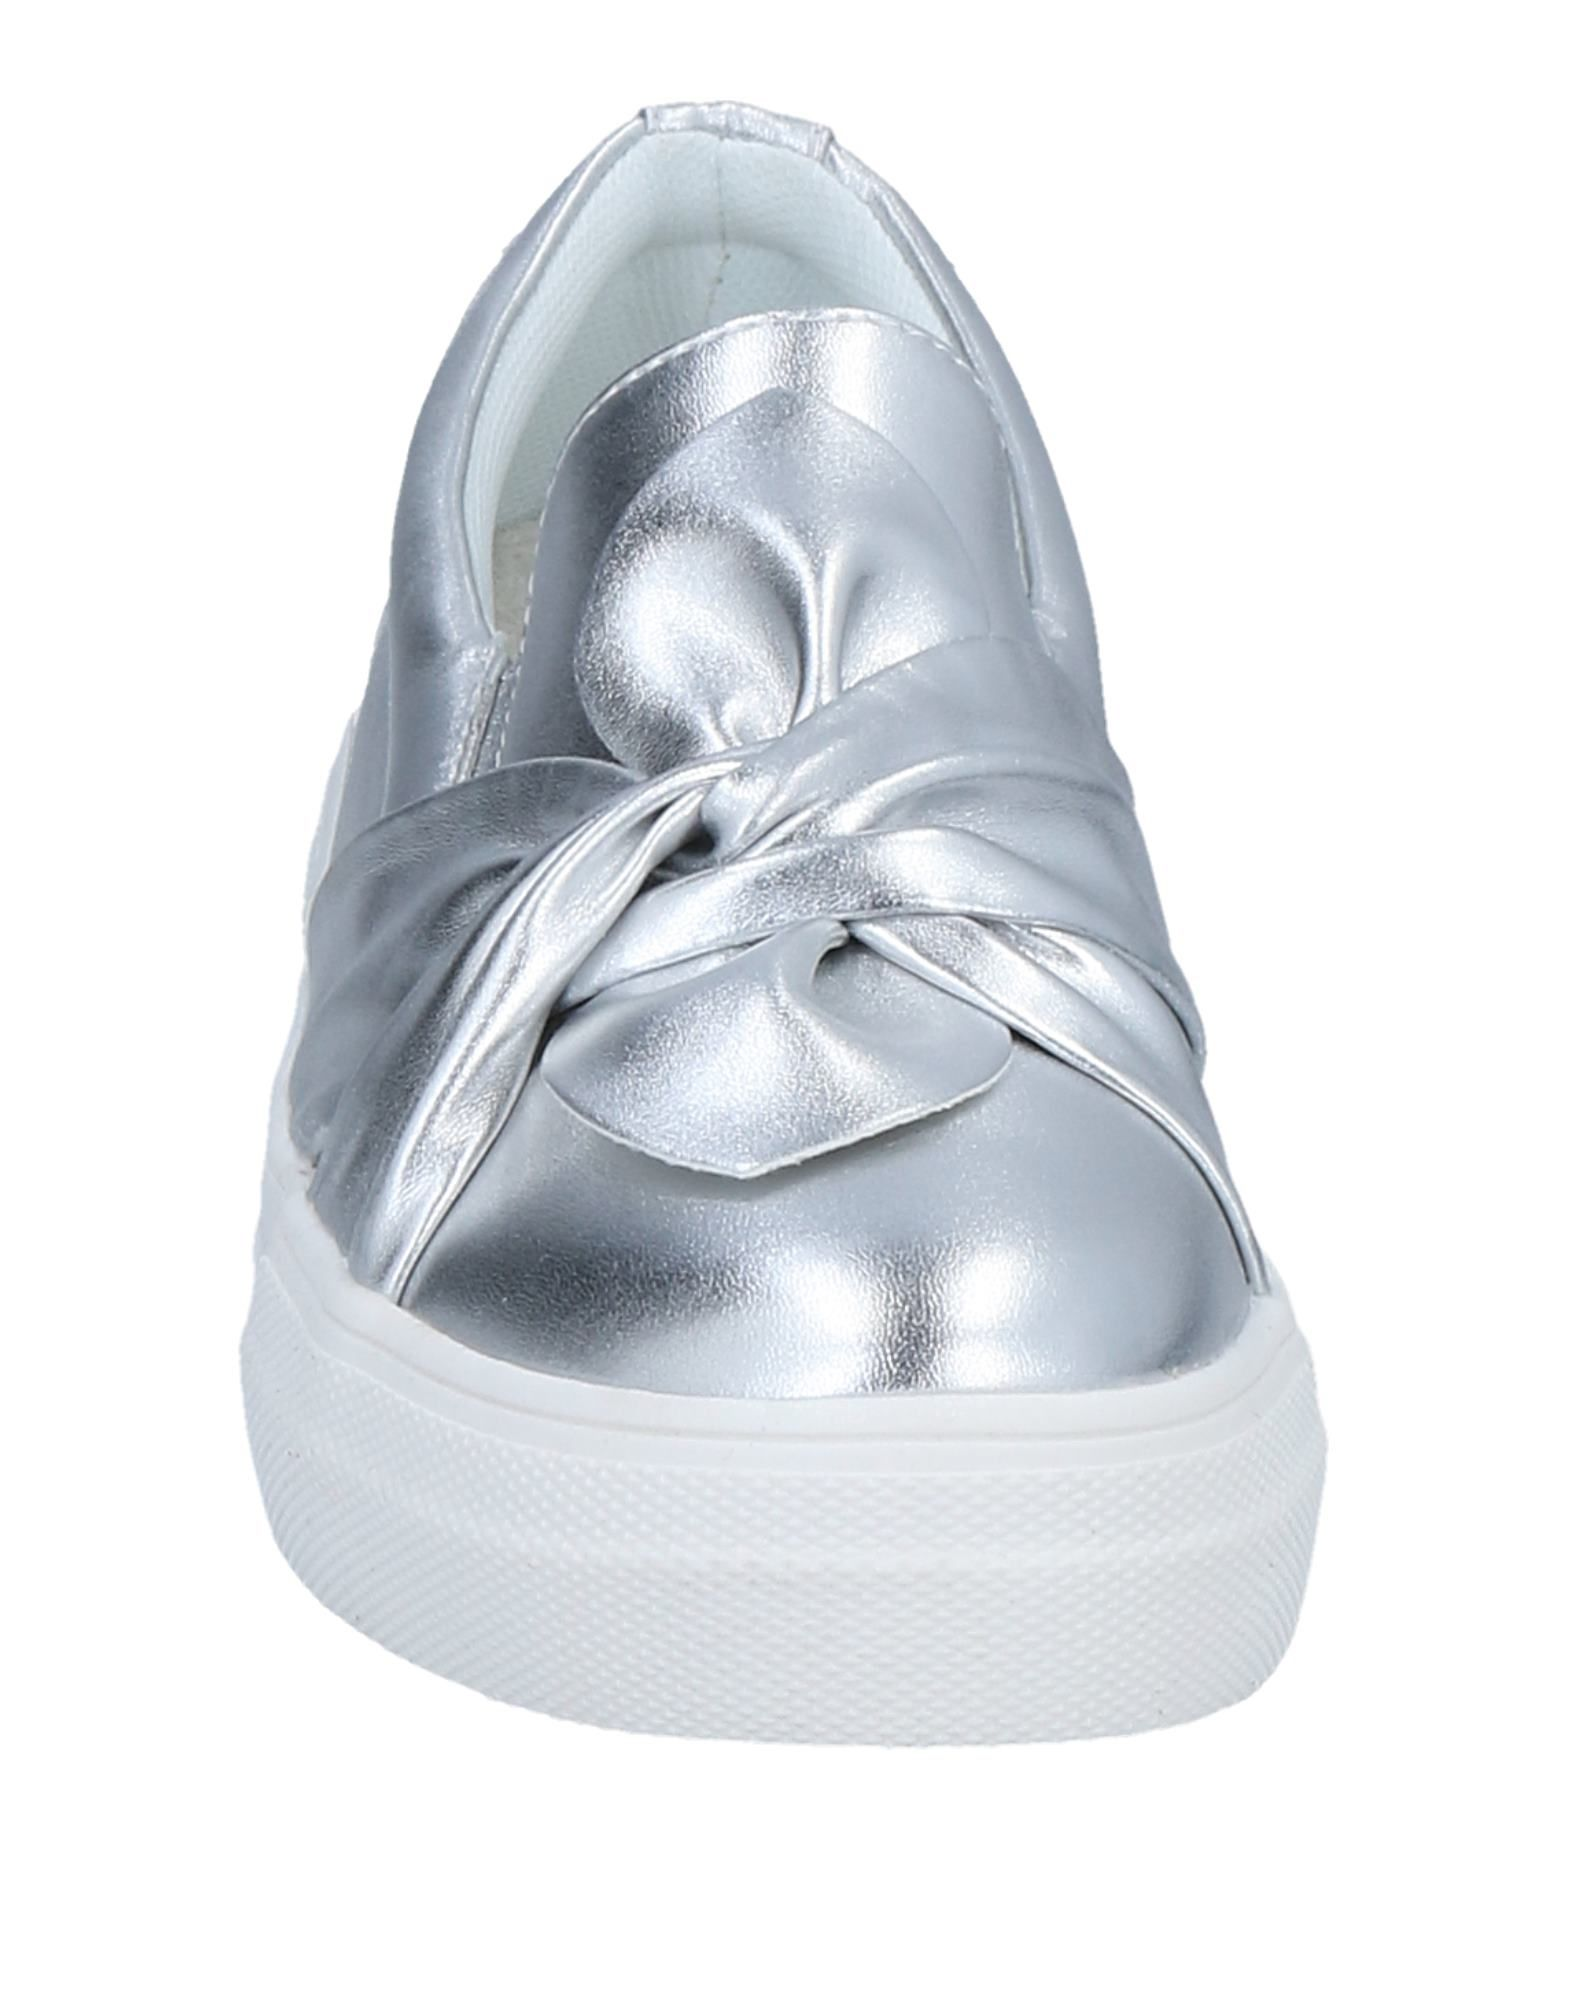 Mauro Fedeli Sneakers - Women Mauro Fedeli Sneakers Kingdom online on  United Kingdom Sneakers - 11506258LX dcb727